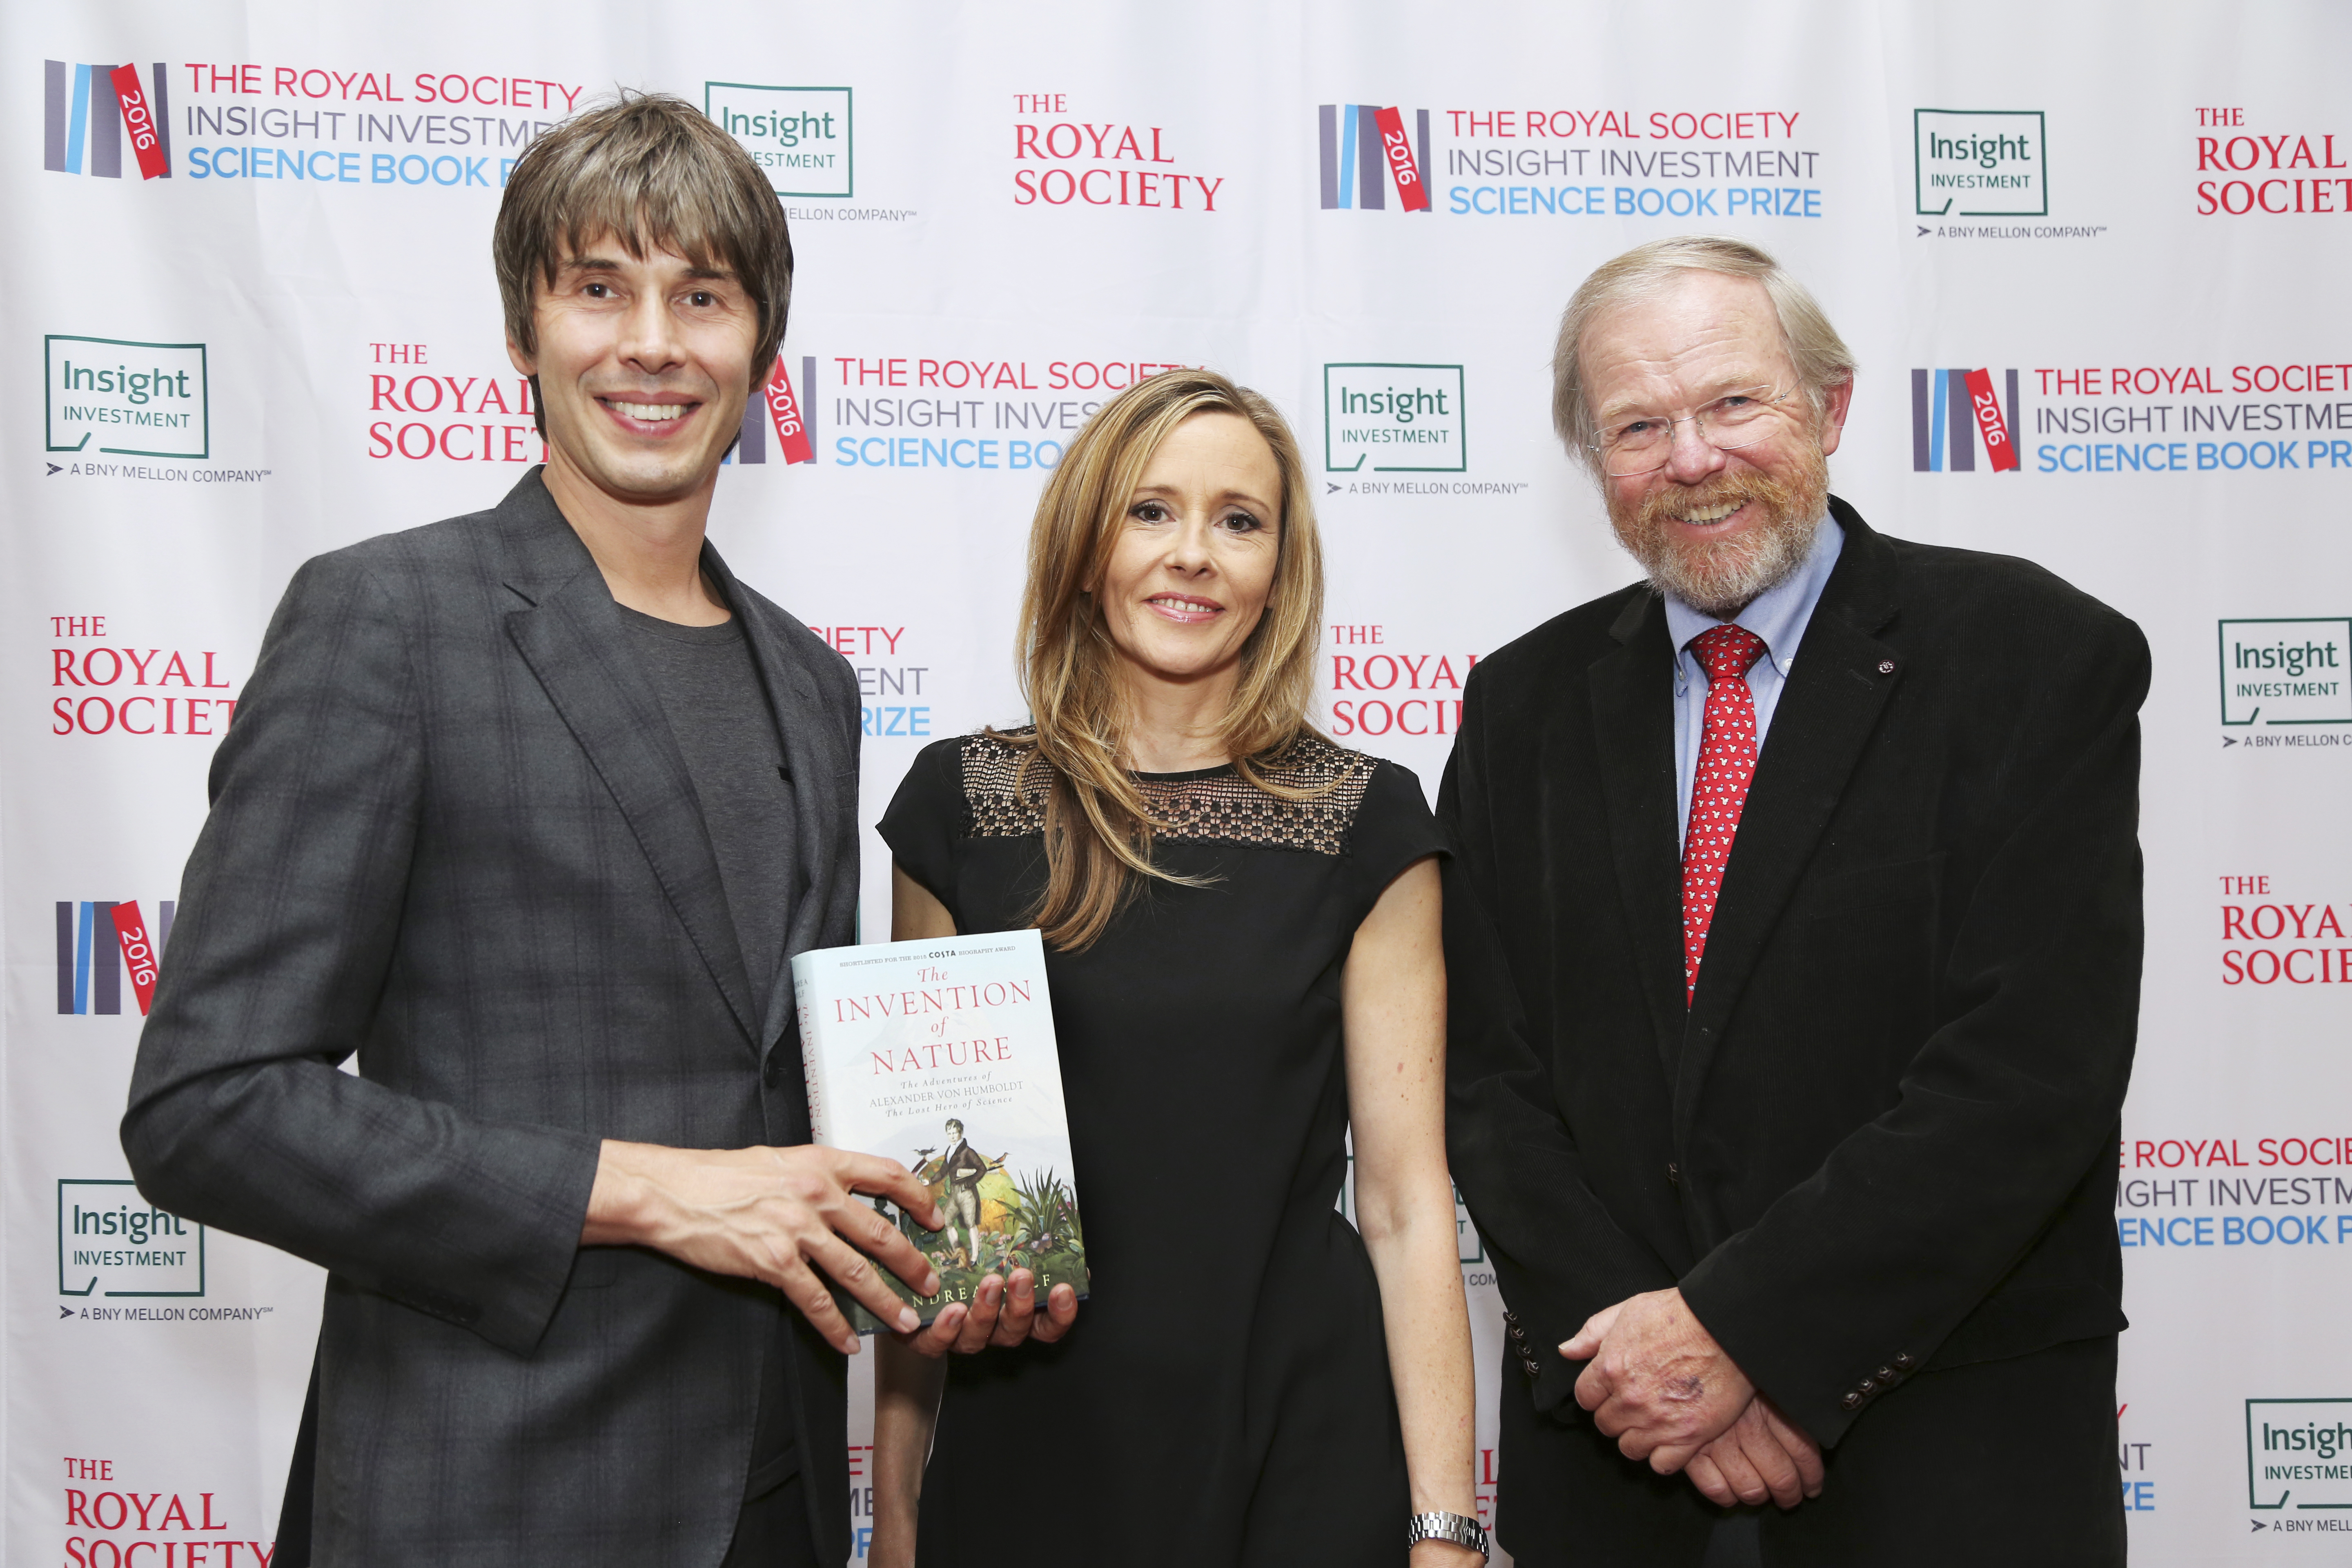 2016 Winner Andrea Wulf at the award ceremony with Professor Brian Cox and Chair of judges Bill Bryson